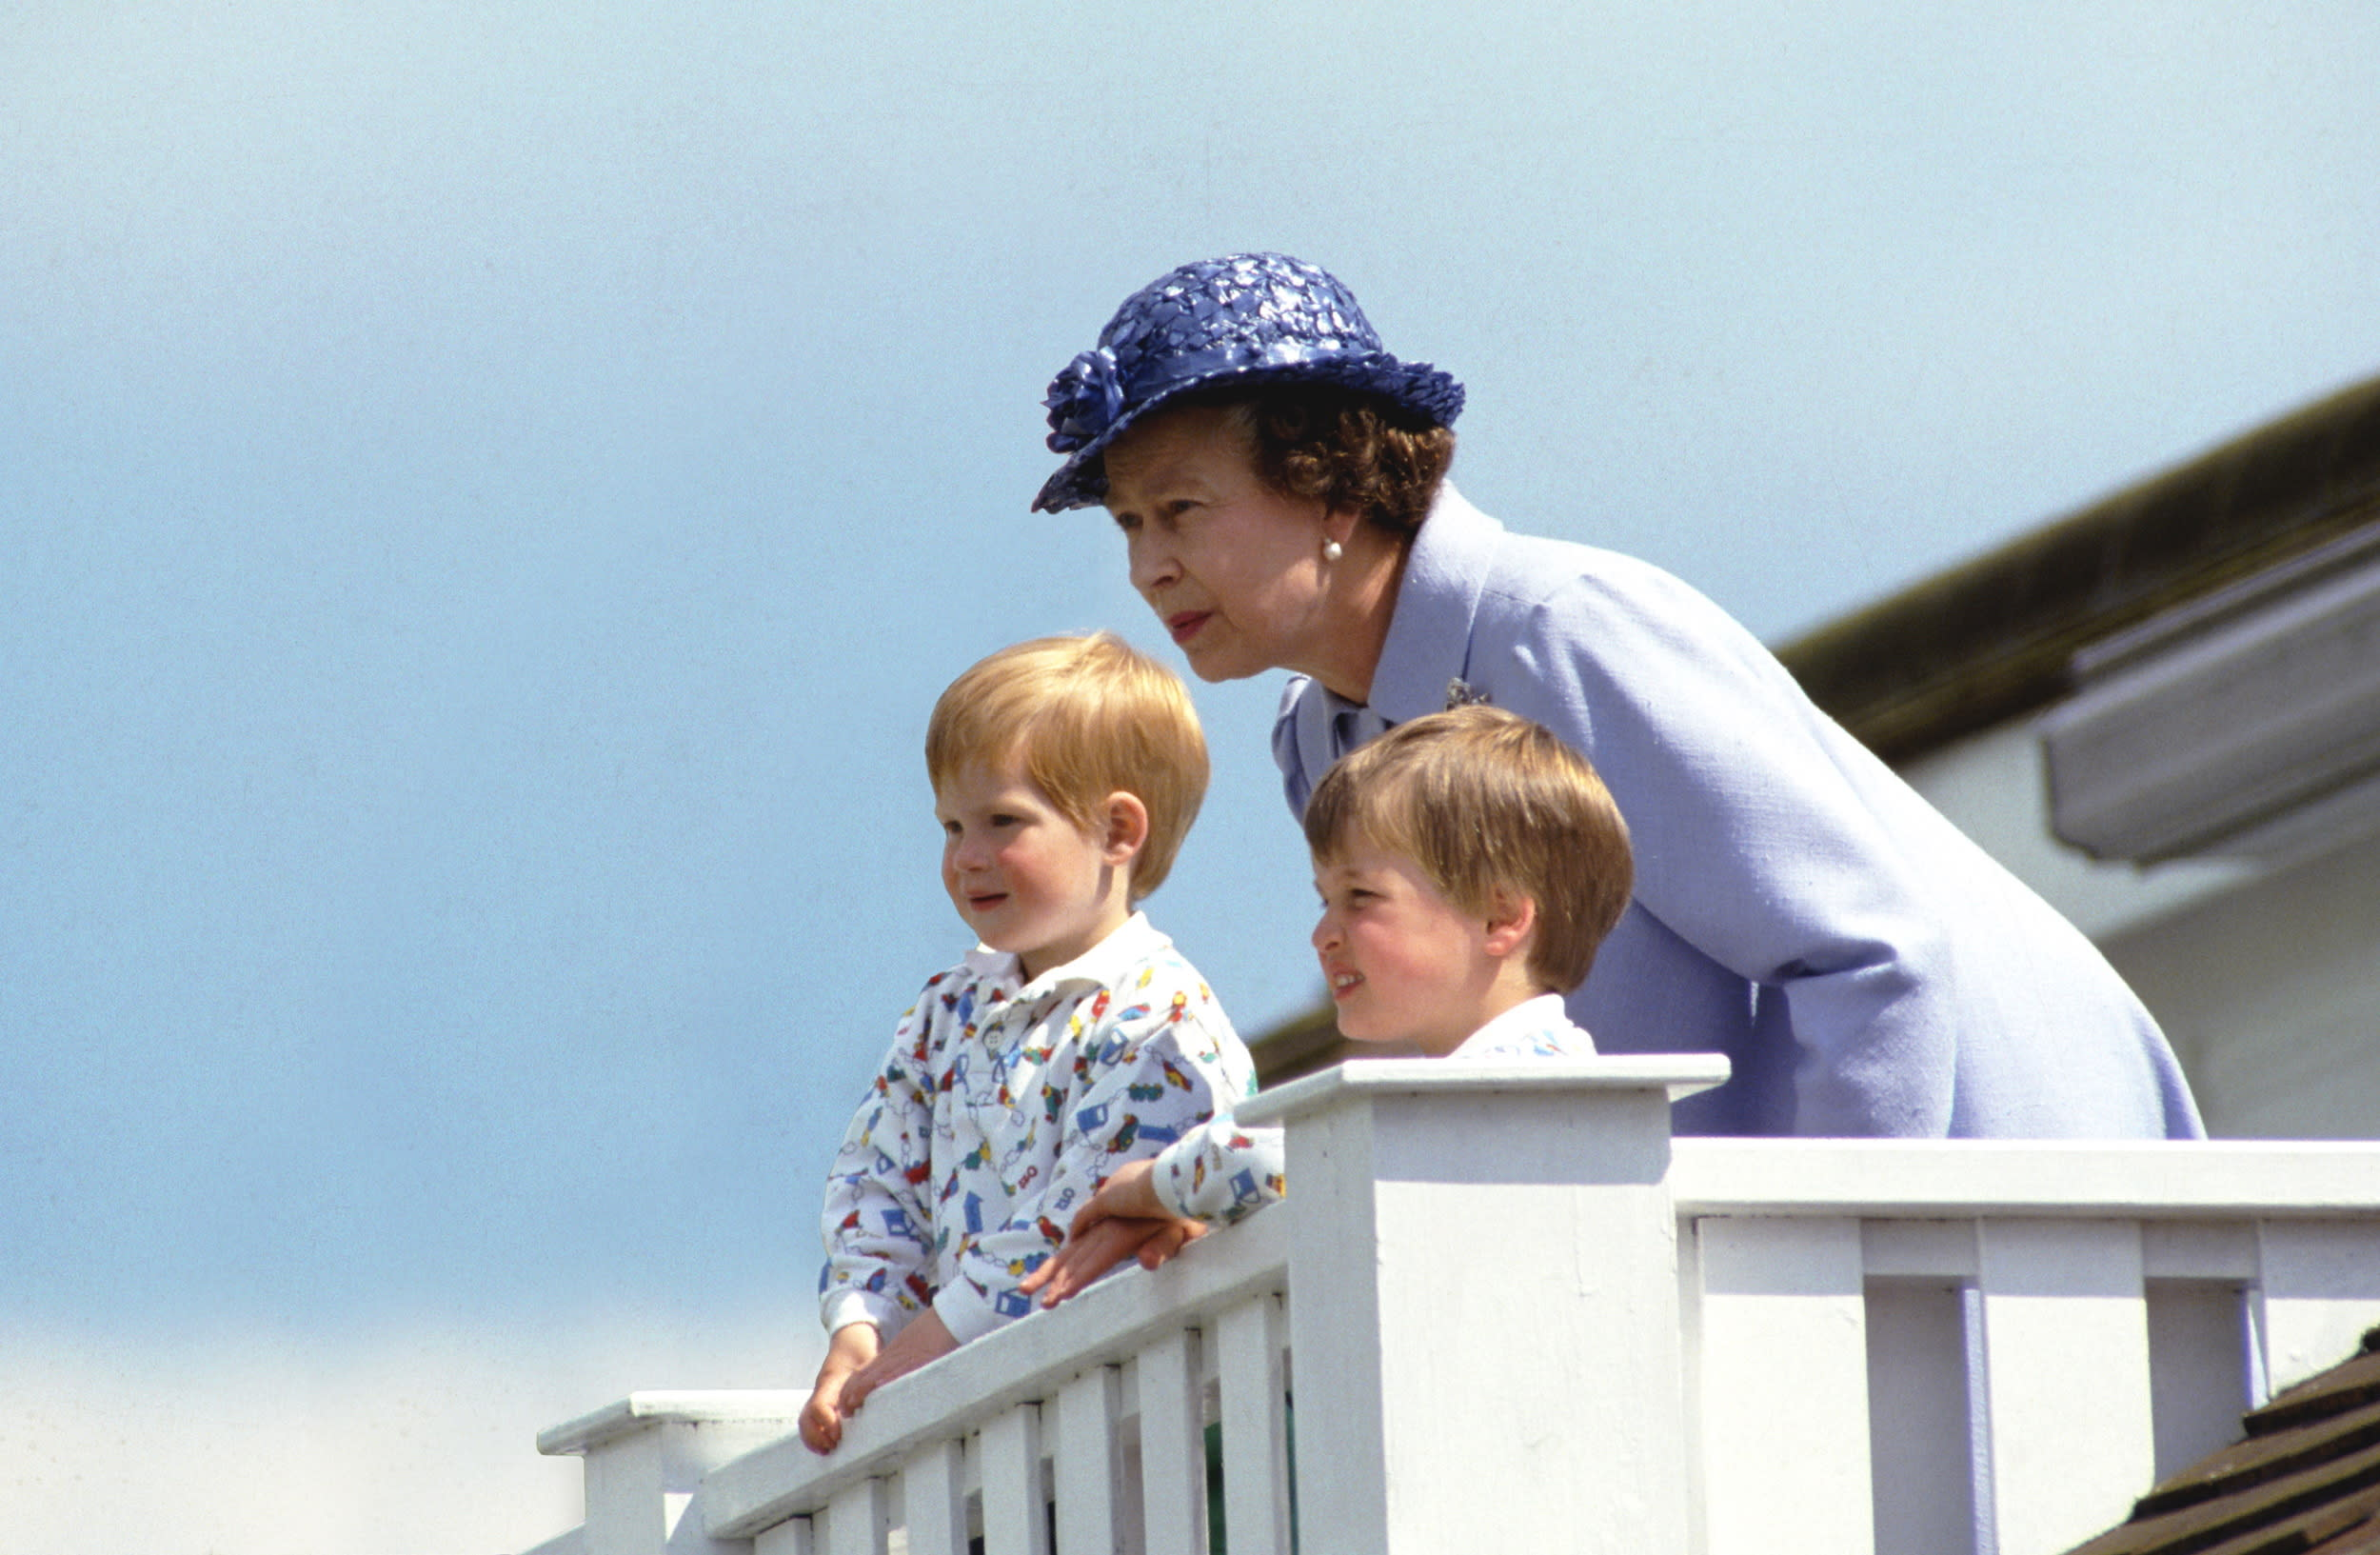 UNITED KINGDOM - JUNE 14:  The Queen With Prince William And Prince Harry In The Royal Box At Guards Polo Club, Smiths Lawn, Windsor  (Photo by Tim Graham/Getty Images)